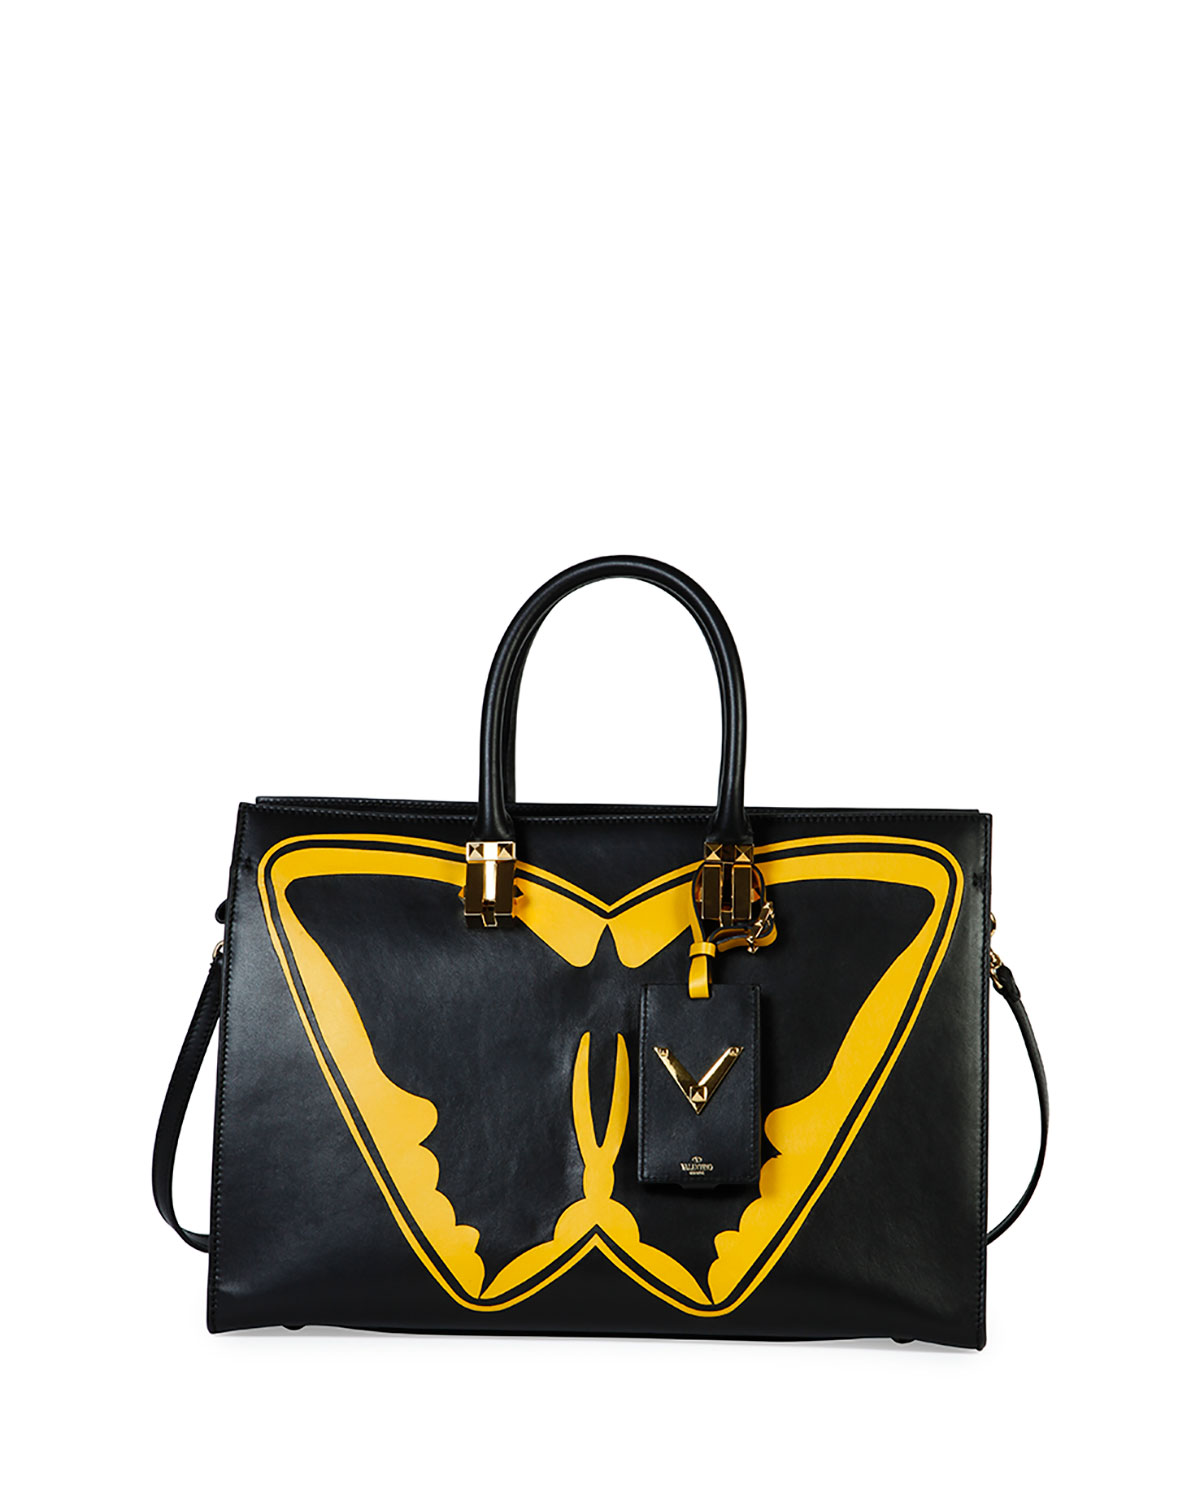 Red Valentino Superhero Batman Tote Bag, Black/Yellow